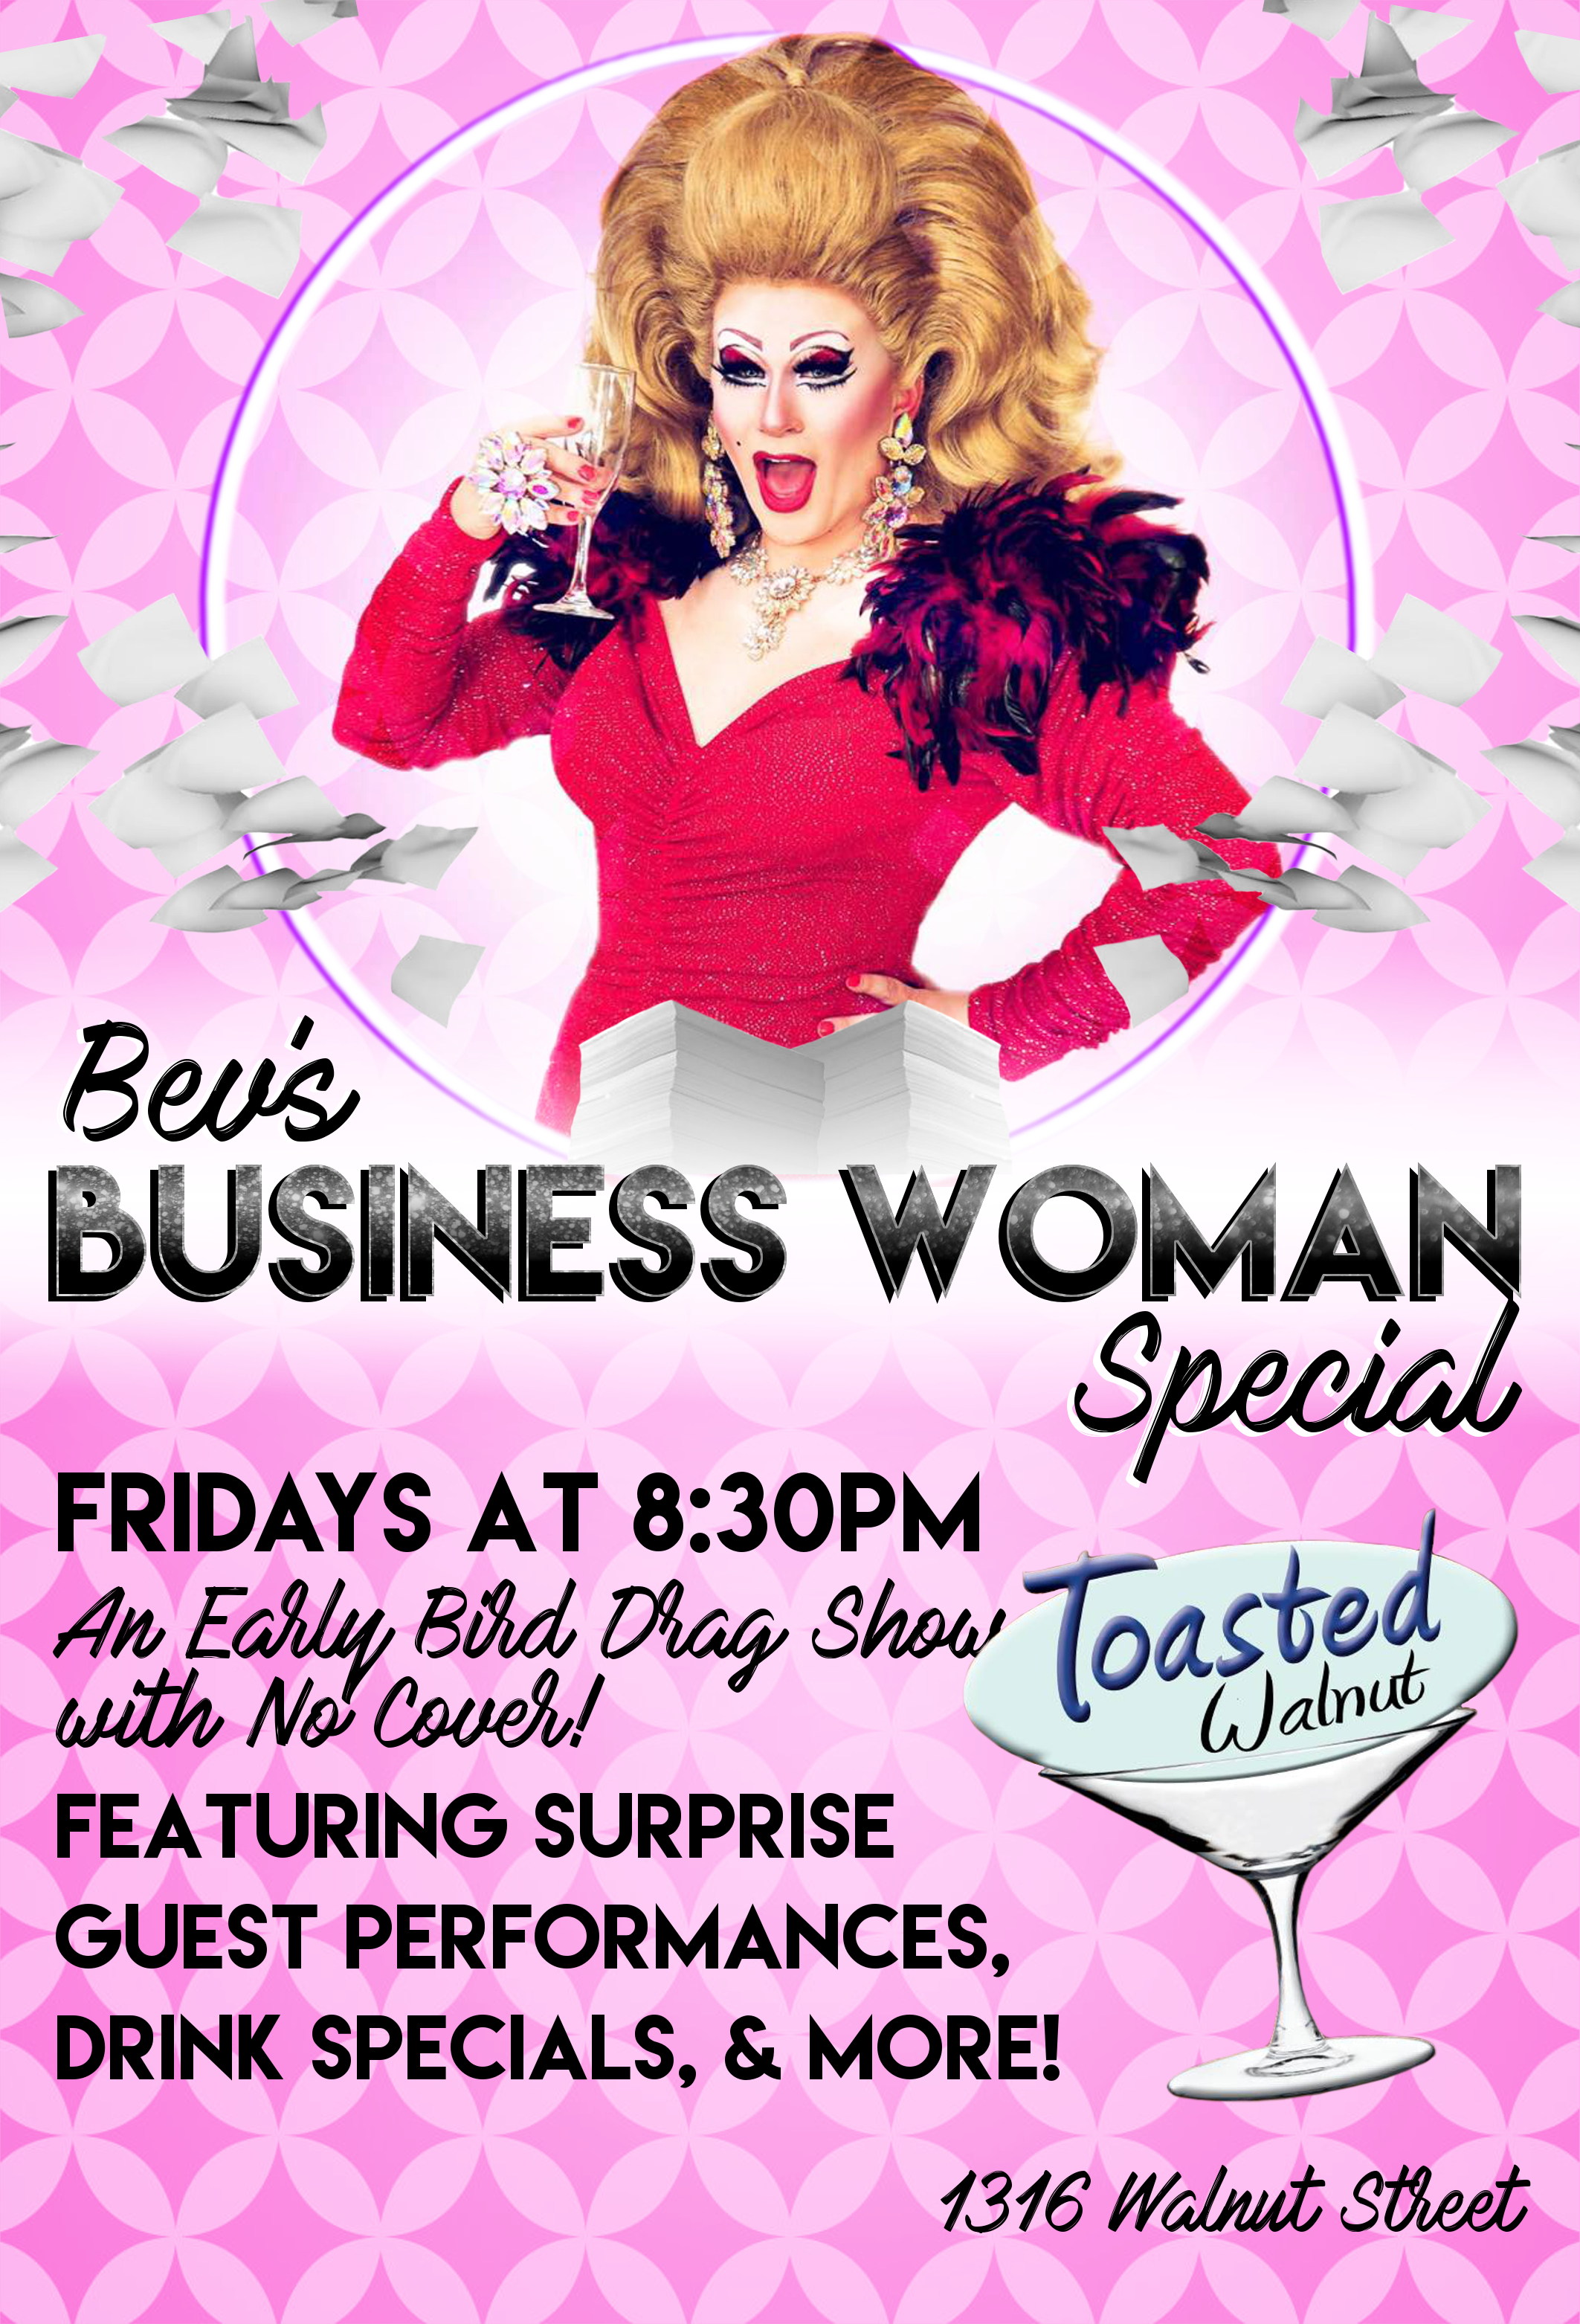 Bev's Business Woman Special